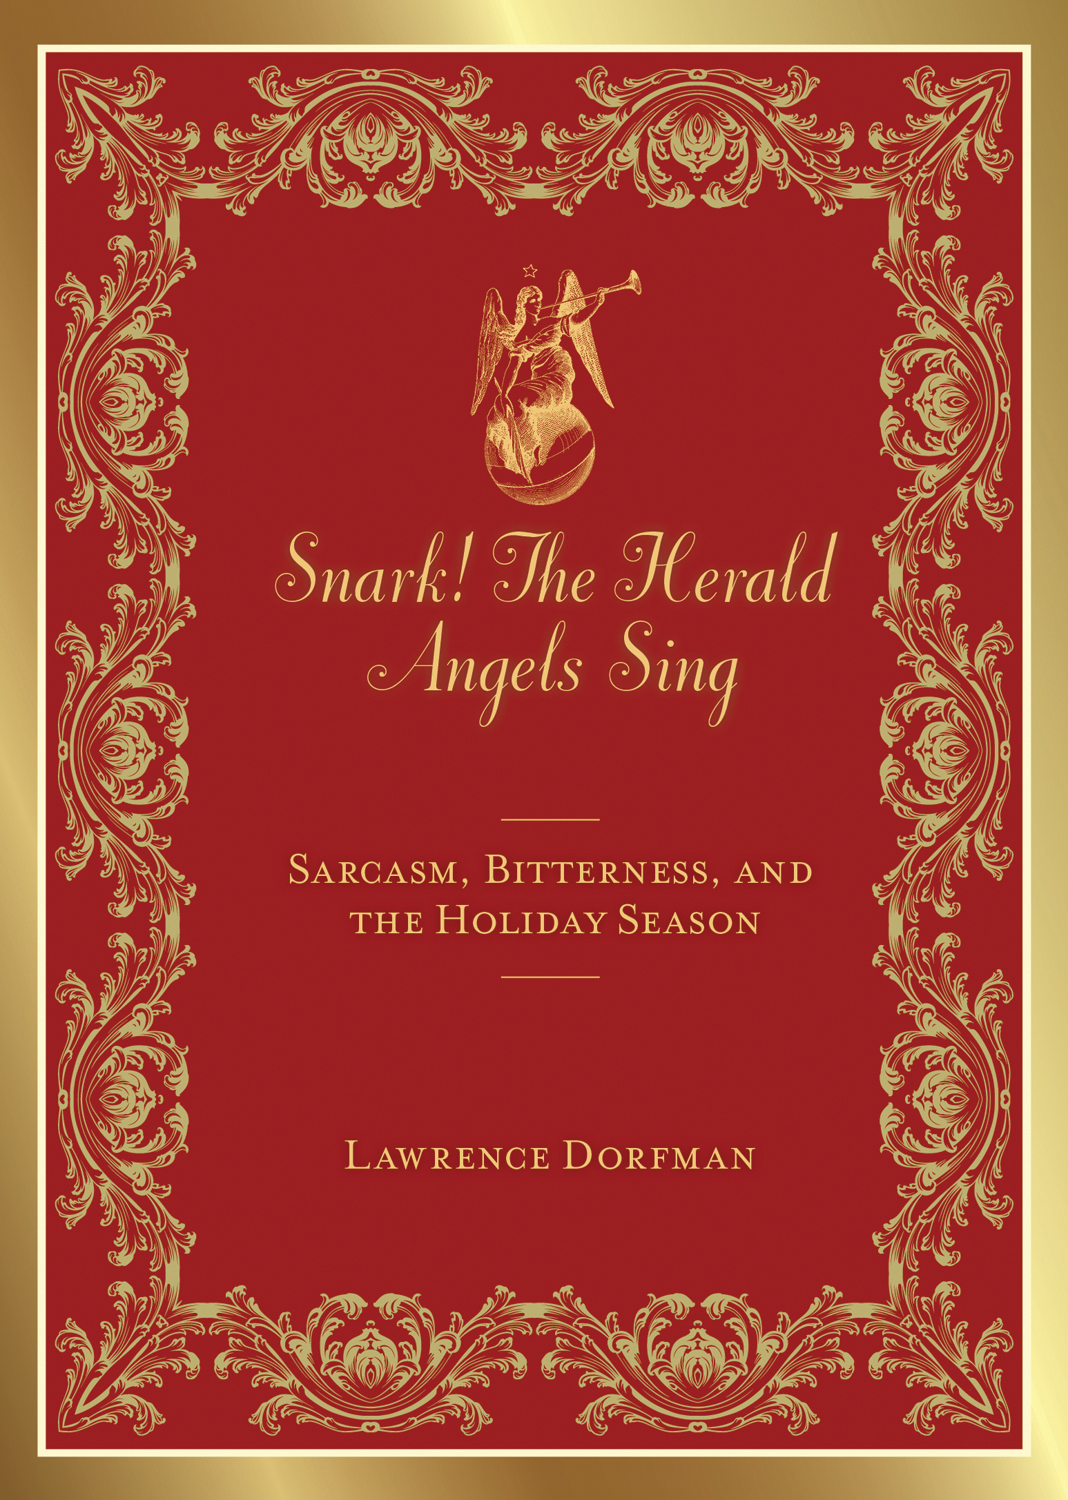 Snark! The Herald Angels Sing: Sarcasm, Bitterness, and the Holiday Season